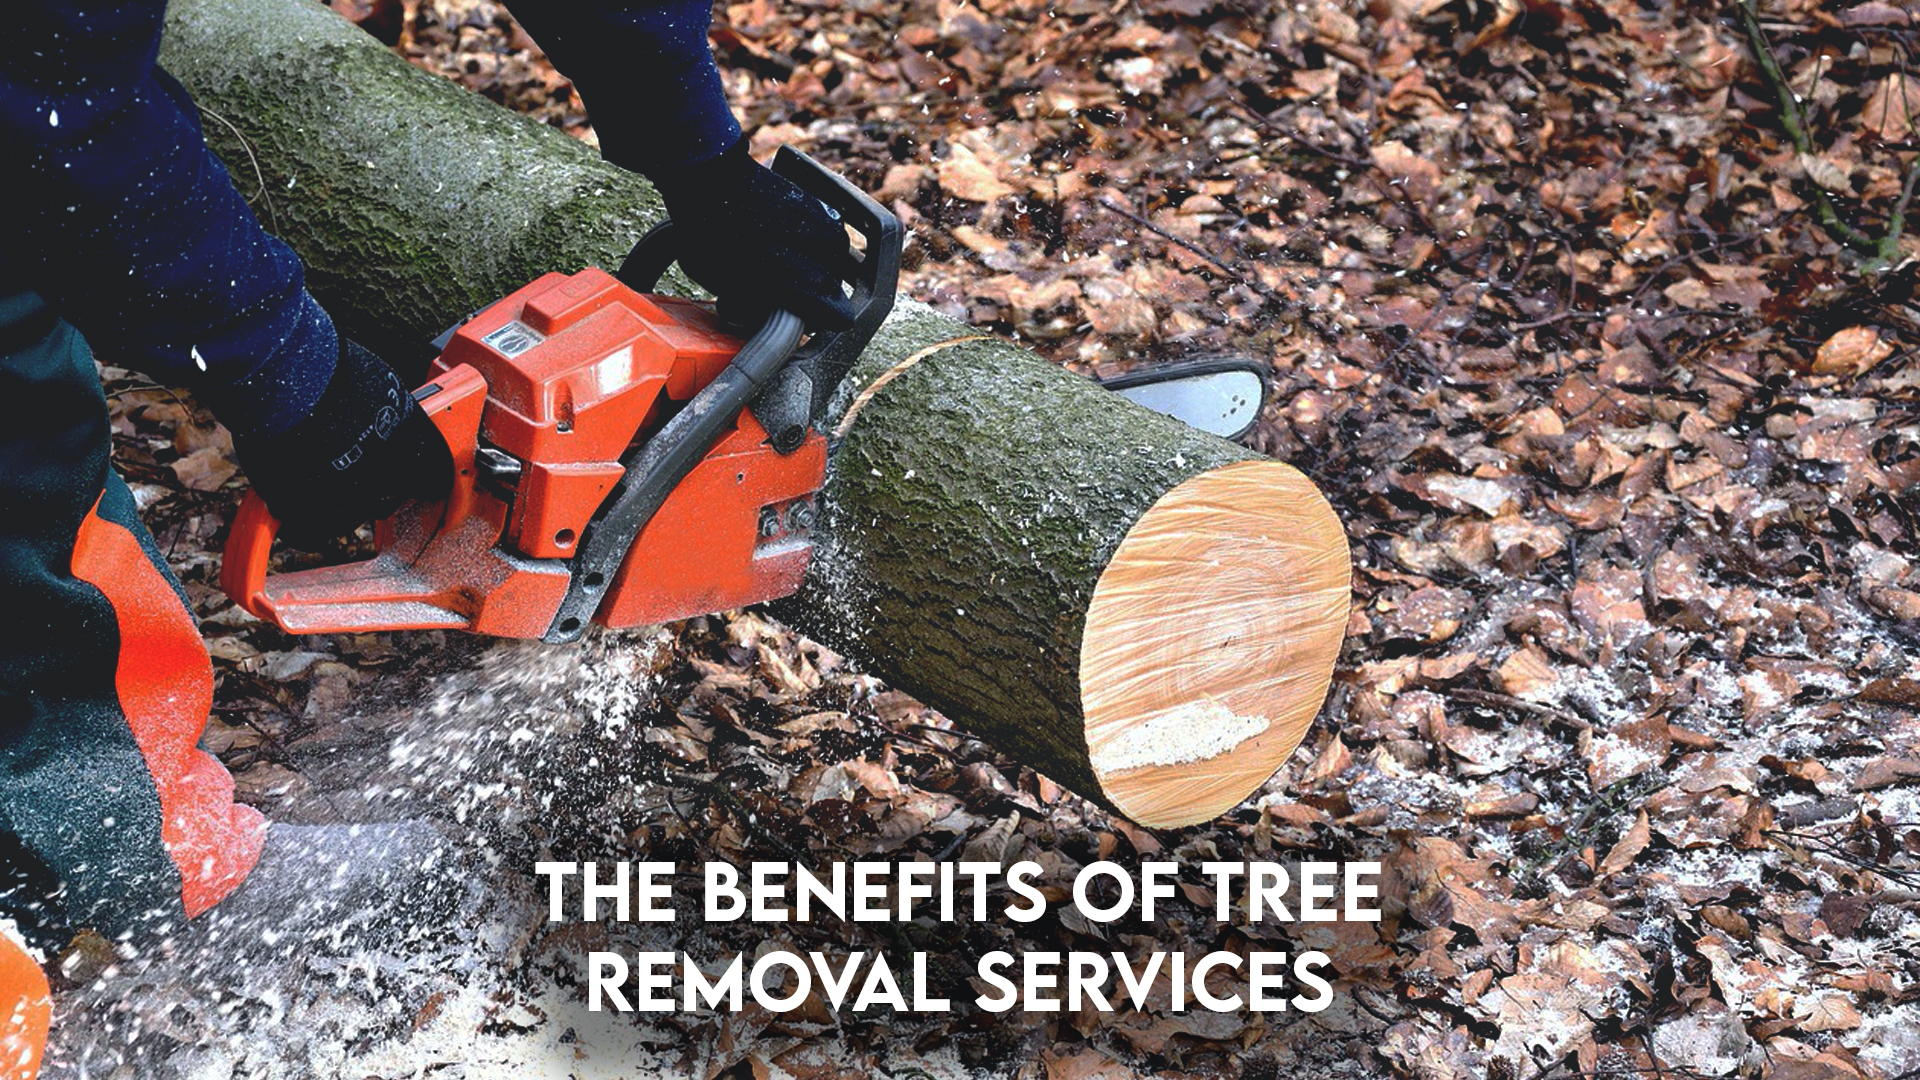 Land clearing, Ground Clearing, site development, Steelwrist Equipment, lot clearing near me, Land clearing, Ground Clearing, site development, Steelwrist Equipment, lot clearing near me, tree removal services   Grovin Farms, FL